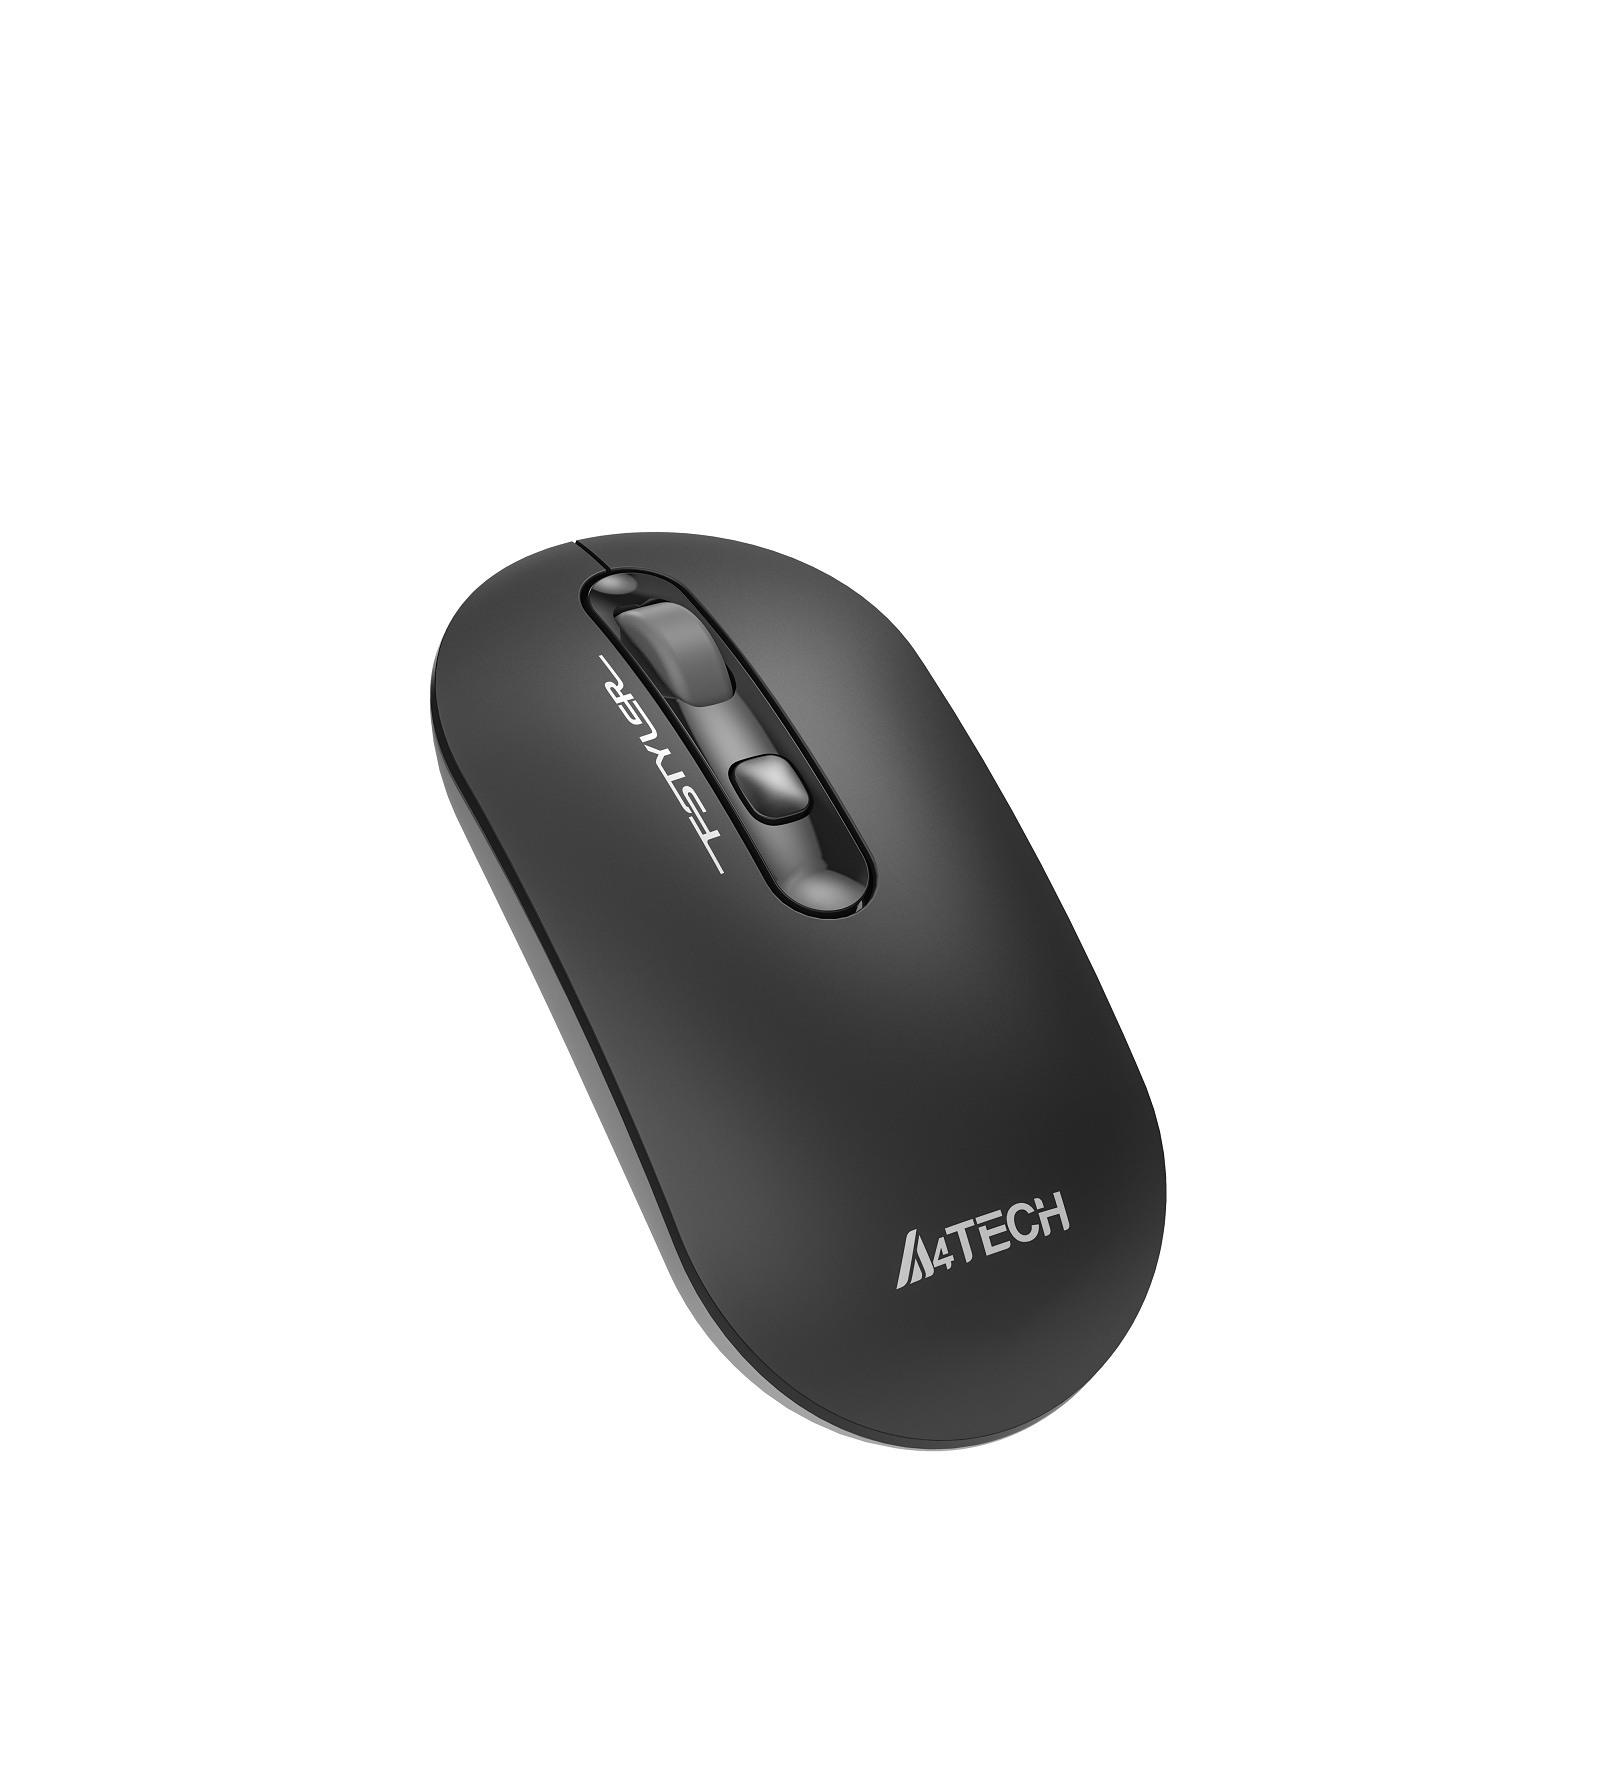 A4 TECH FG20 OPTIK MOUSE NANO USB GRİ 2000 DPI